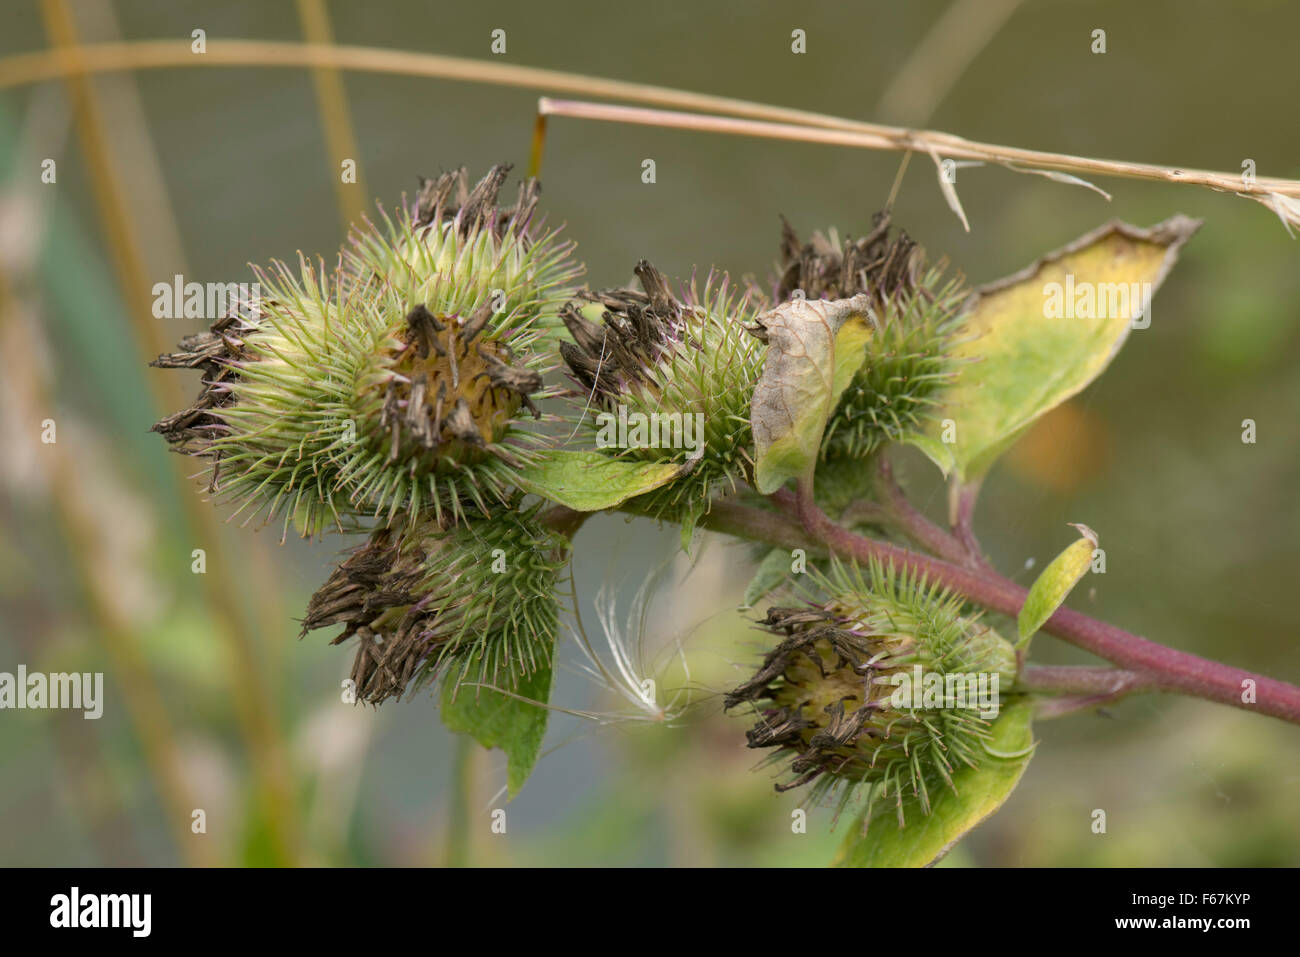 Seedhead of burdock, Arctium minus, sticky velcro type hairs after flowering, Berkshire, August - Stock Image